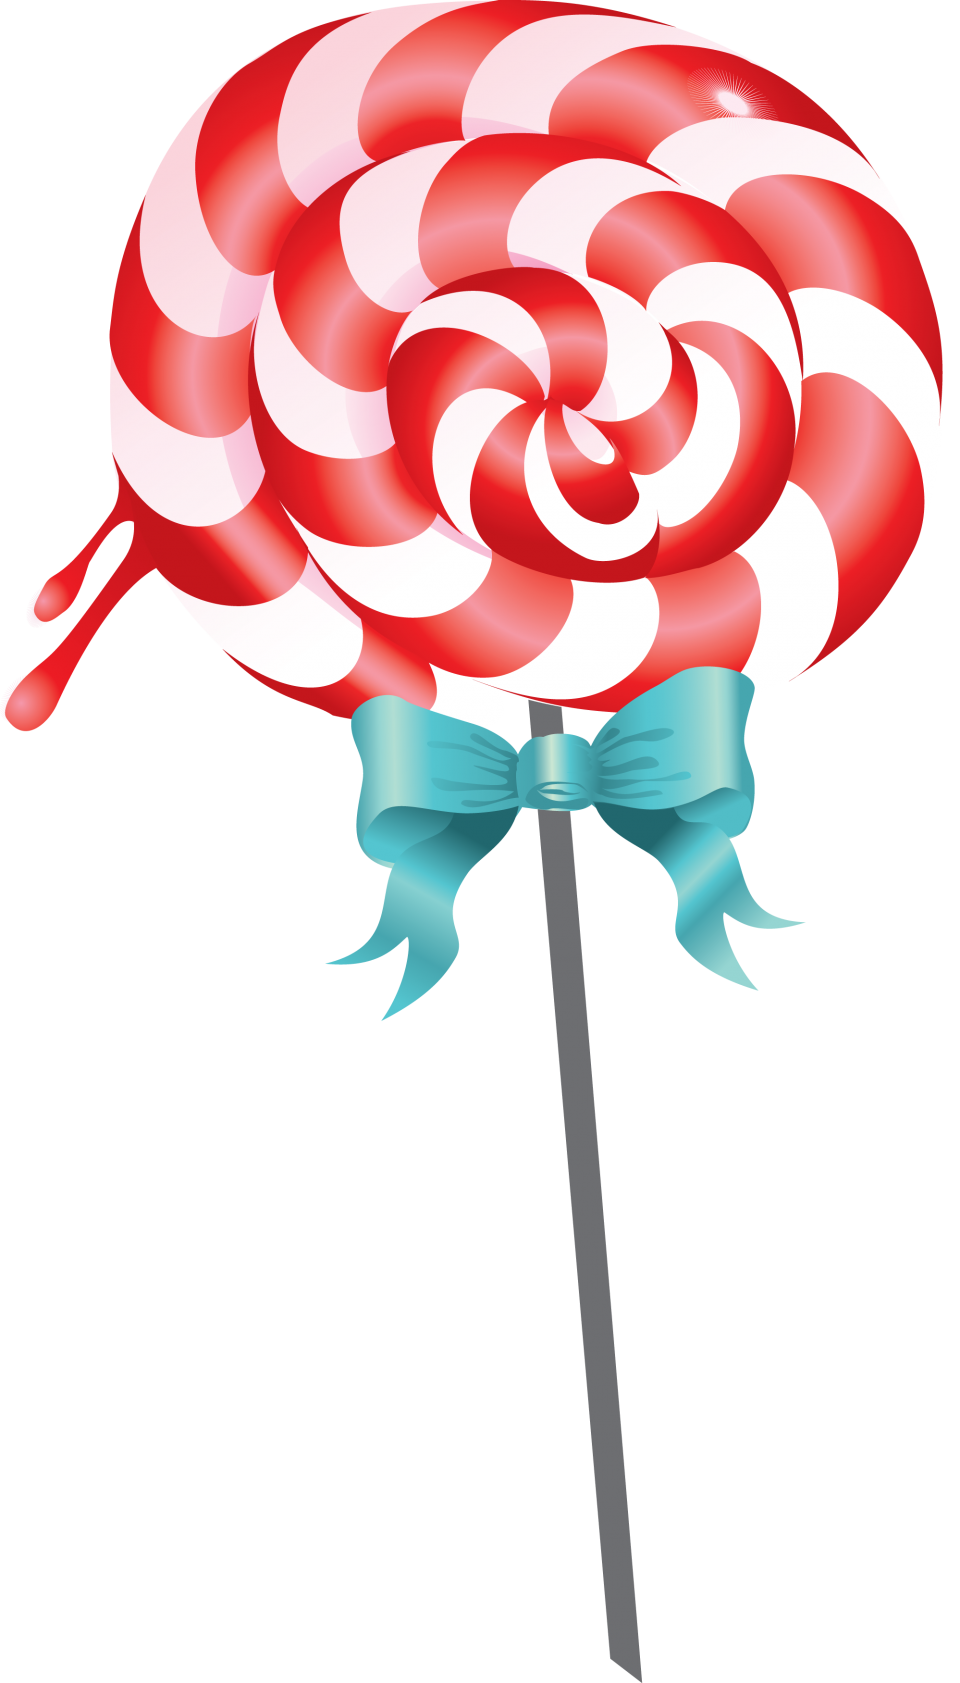 Red and White Lollipop PNG Image